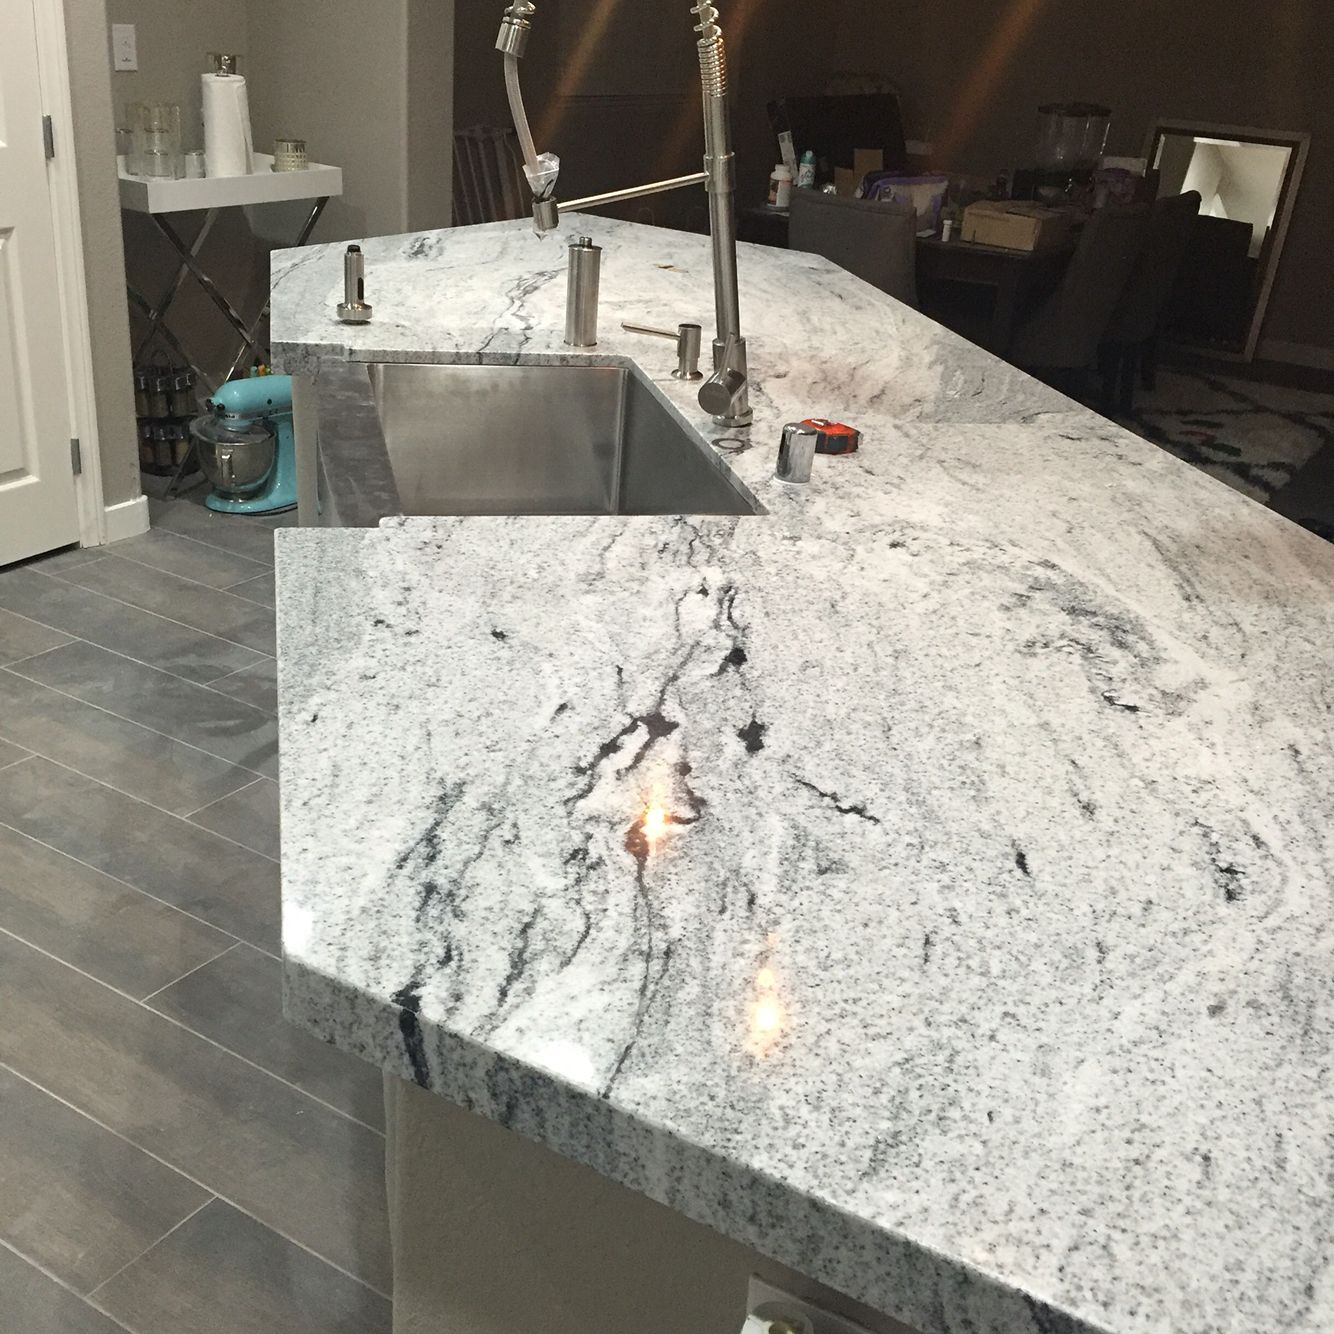 Kitchen Remodel White Cabinets White Viscount Granite Apron Sink Zuhne Sink And Faucet Whitegranite Luxury Kitchen Design Kitchen Remodel Wood Plank Tile